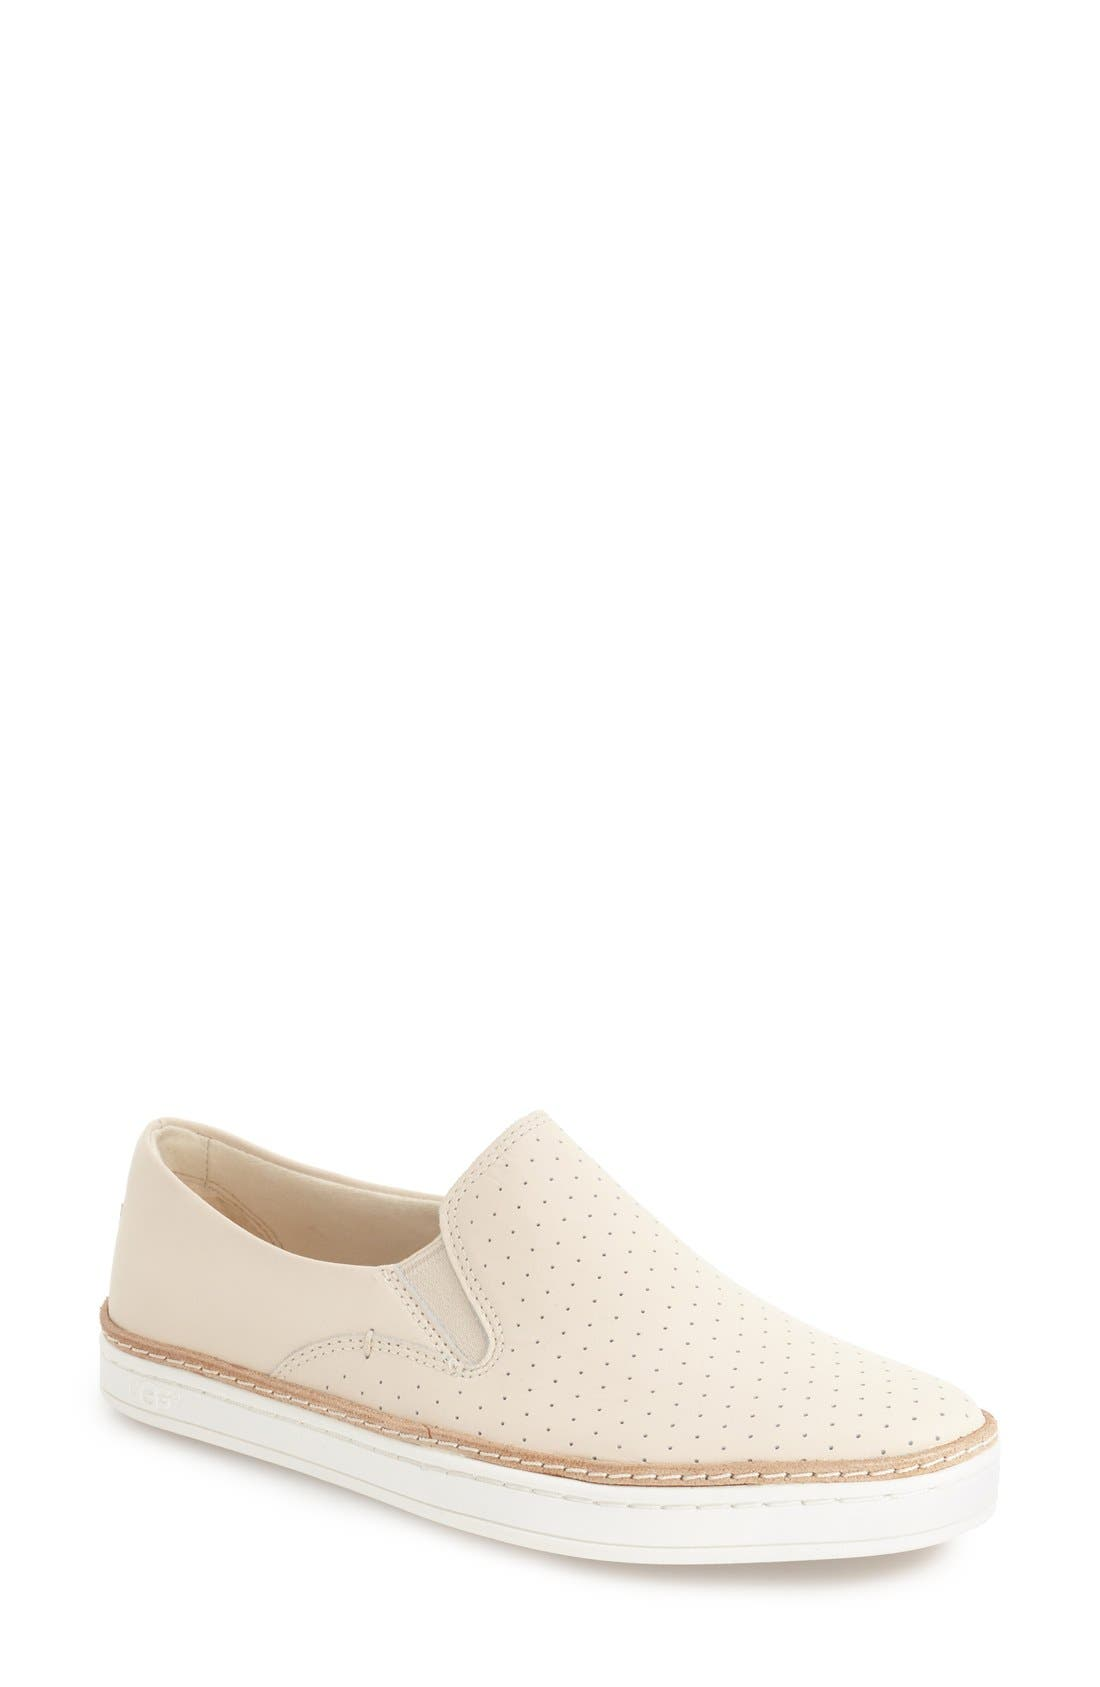 Alternate Image 1 Selected - UGG® 'Keile' Perforated Sneaker (Women)